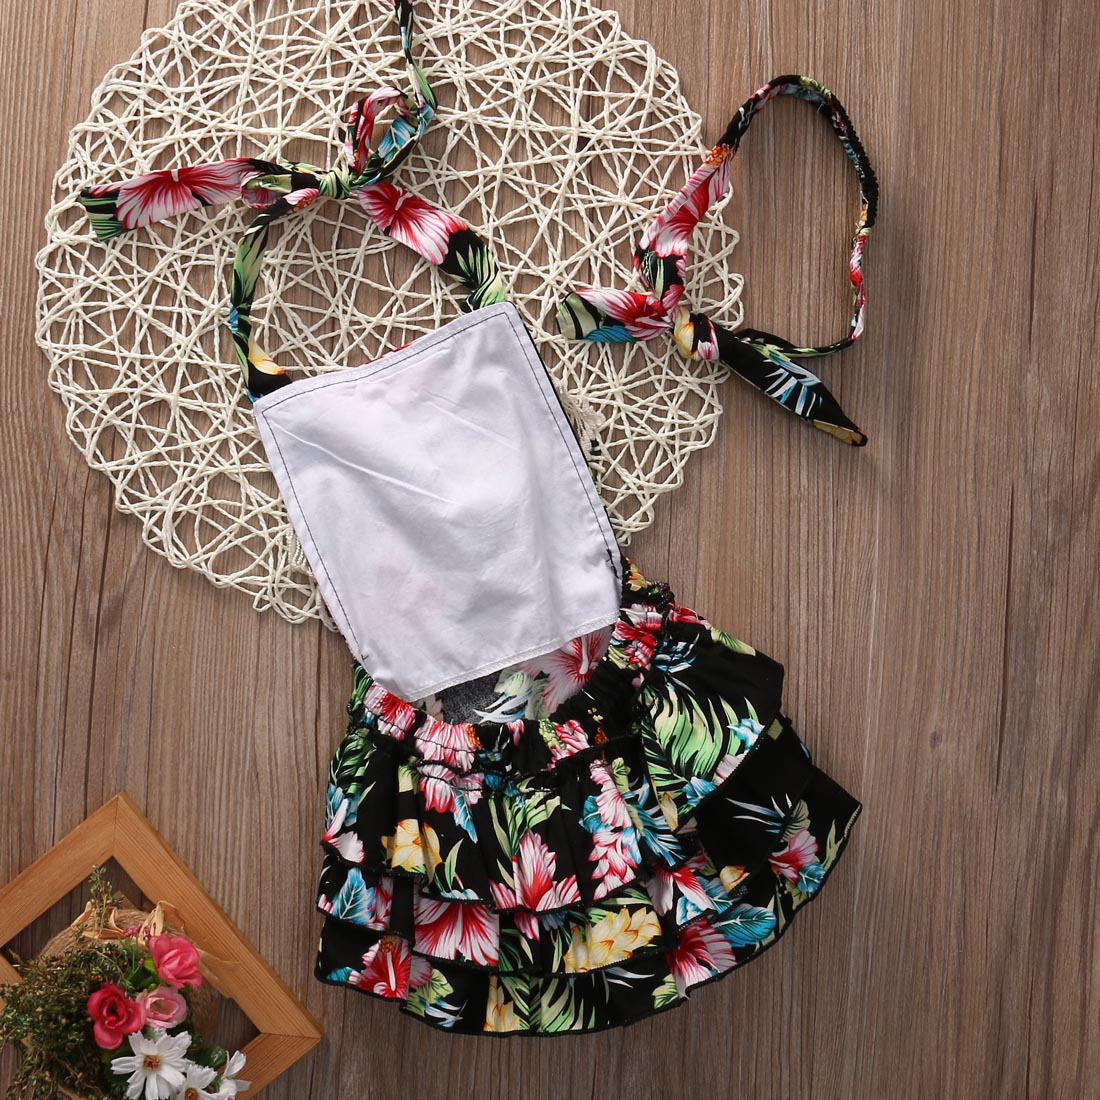 Baby Girl Bodysuit 2017 Hot Floral Fashion Backless Lace Sweet Baby Girls Bodysuit Ruffle Jumpersuit Outfit 0-24M